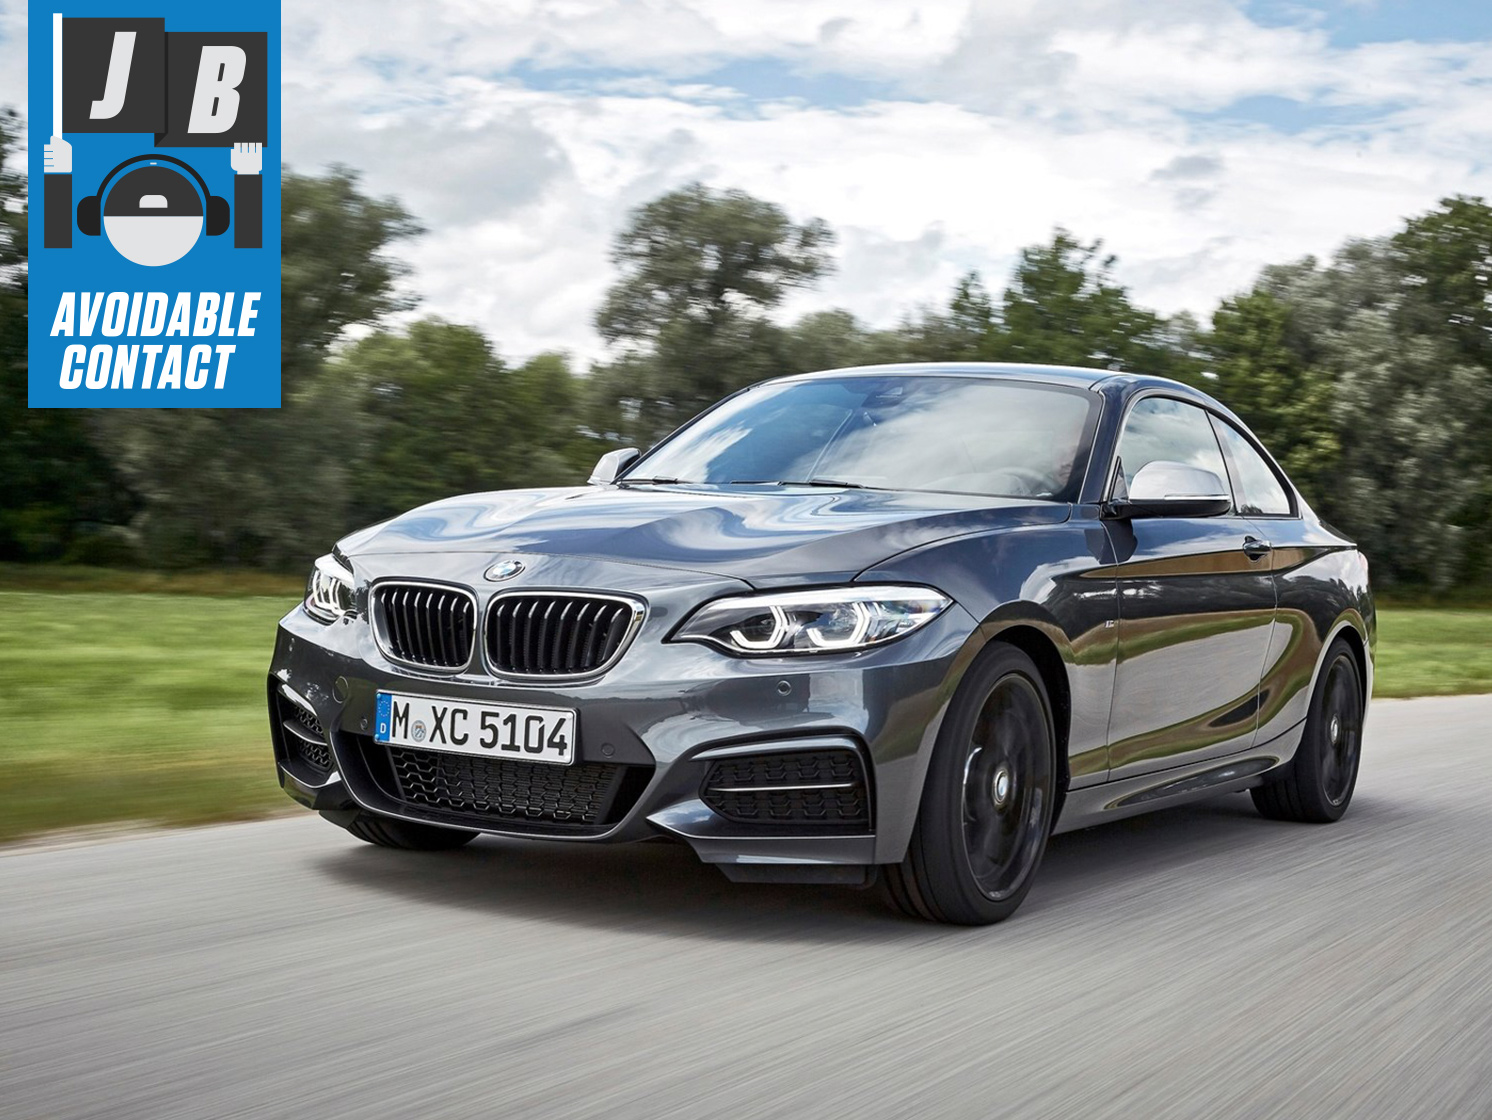 BMW could help save driving by changing its lease programs